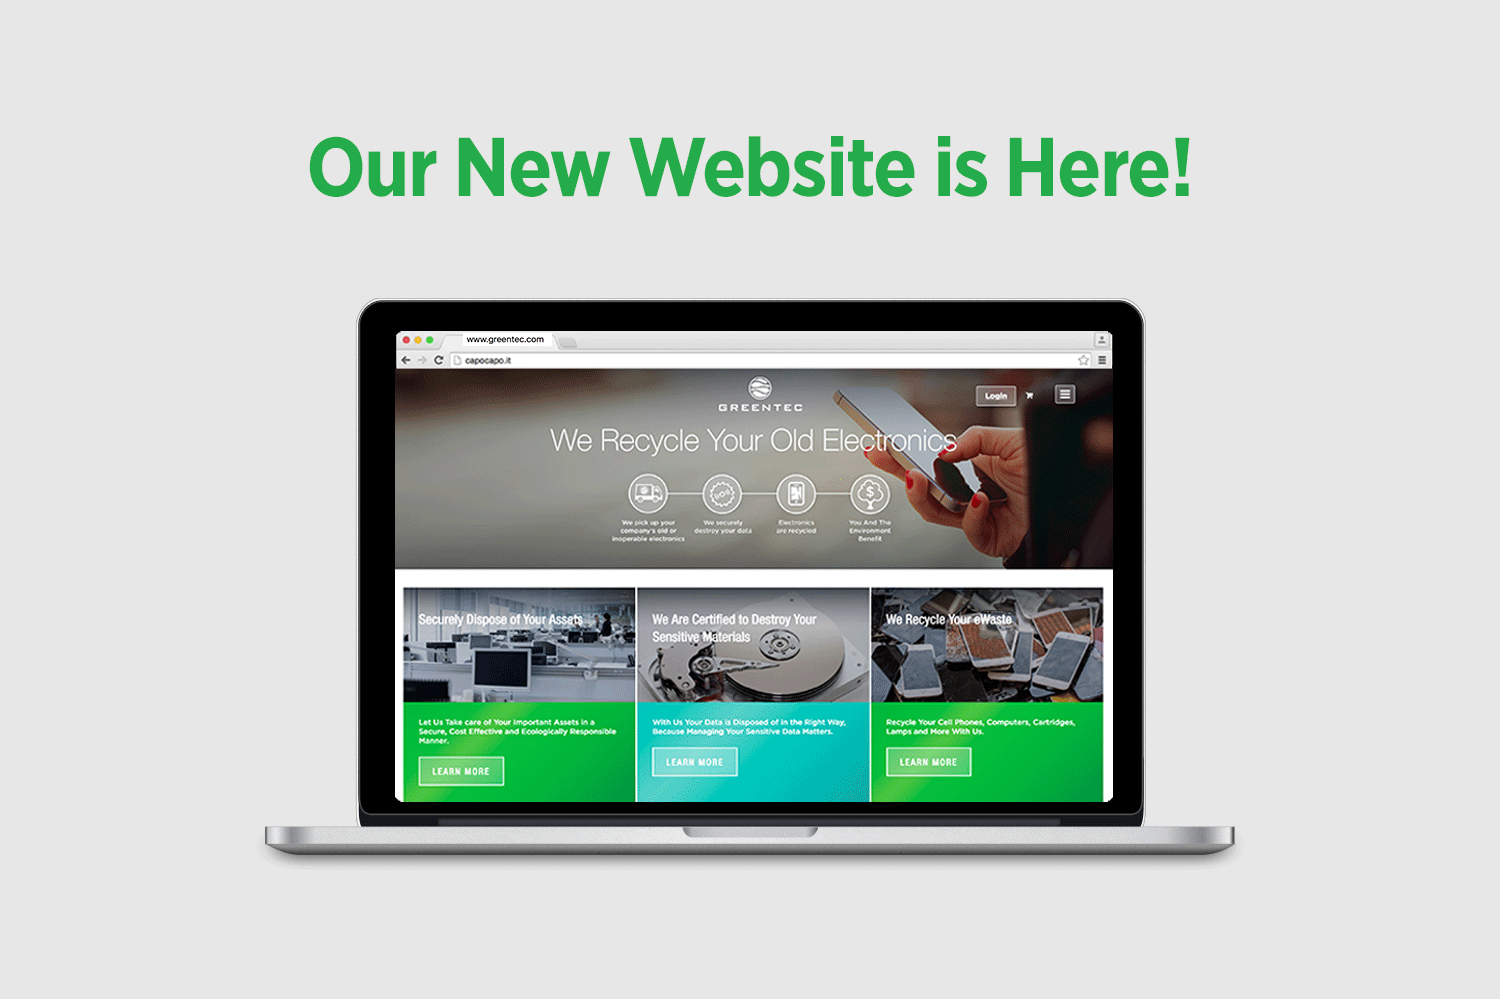 Our-New-Website-is-Here_2